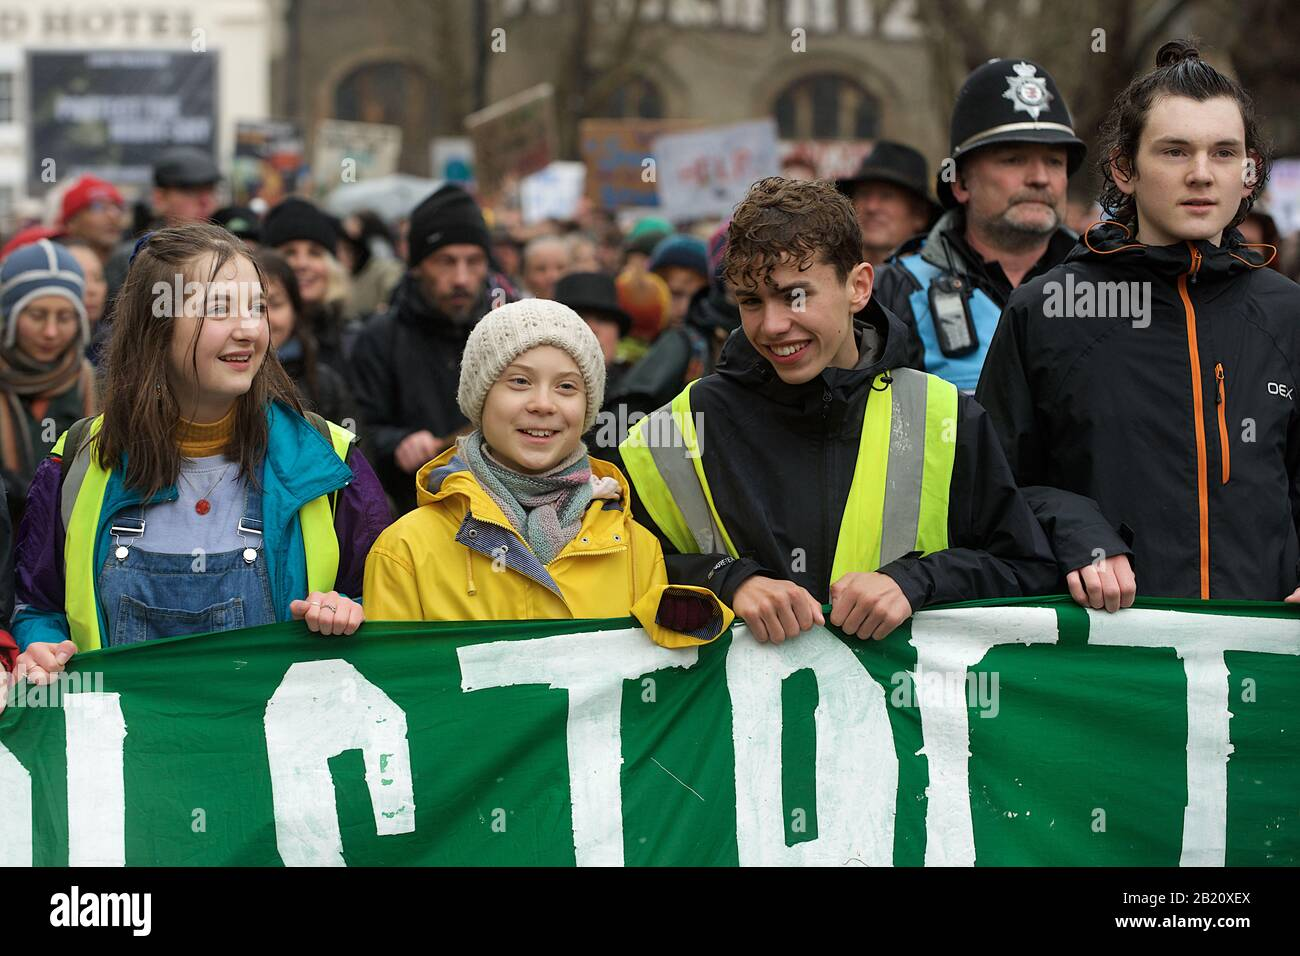 Bristol, UK. 28th Feb, 2020. Greta Thunberg attends the School Strike in Bristol with over 30,000 other people. The school strike for the climate, AKA Fridays for Future, Youth for Climate and Youth Strike 4 Climate, is an international movement of school students who take time off from class to participate in demonstrations to demand action to deal with the Climate & Ecological Emergency Credit: Gareth Morris/Alamy Live News Stock Photo